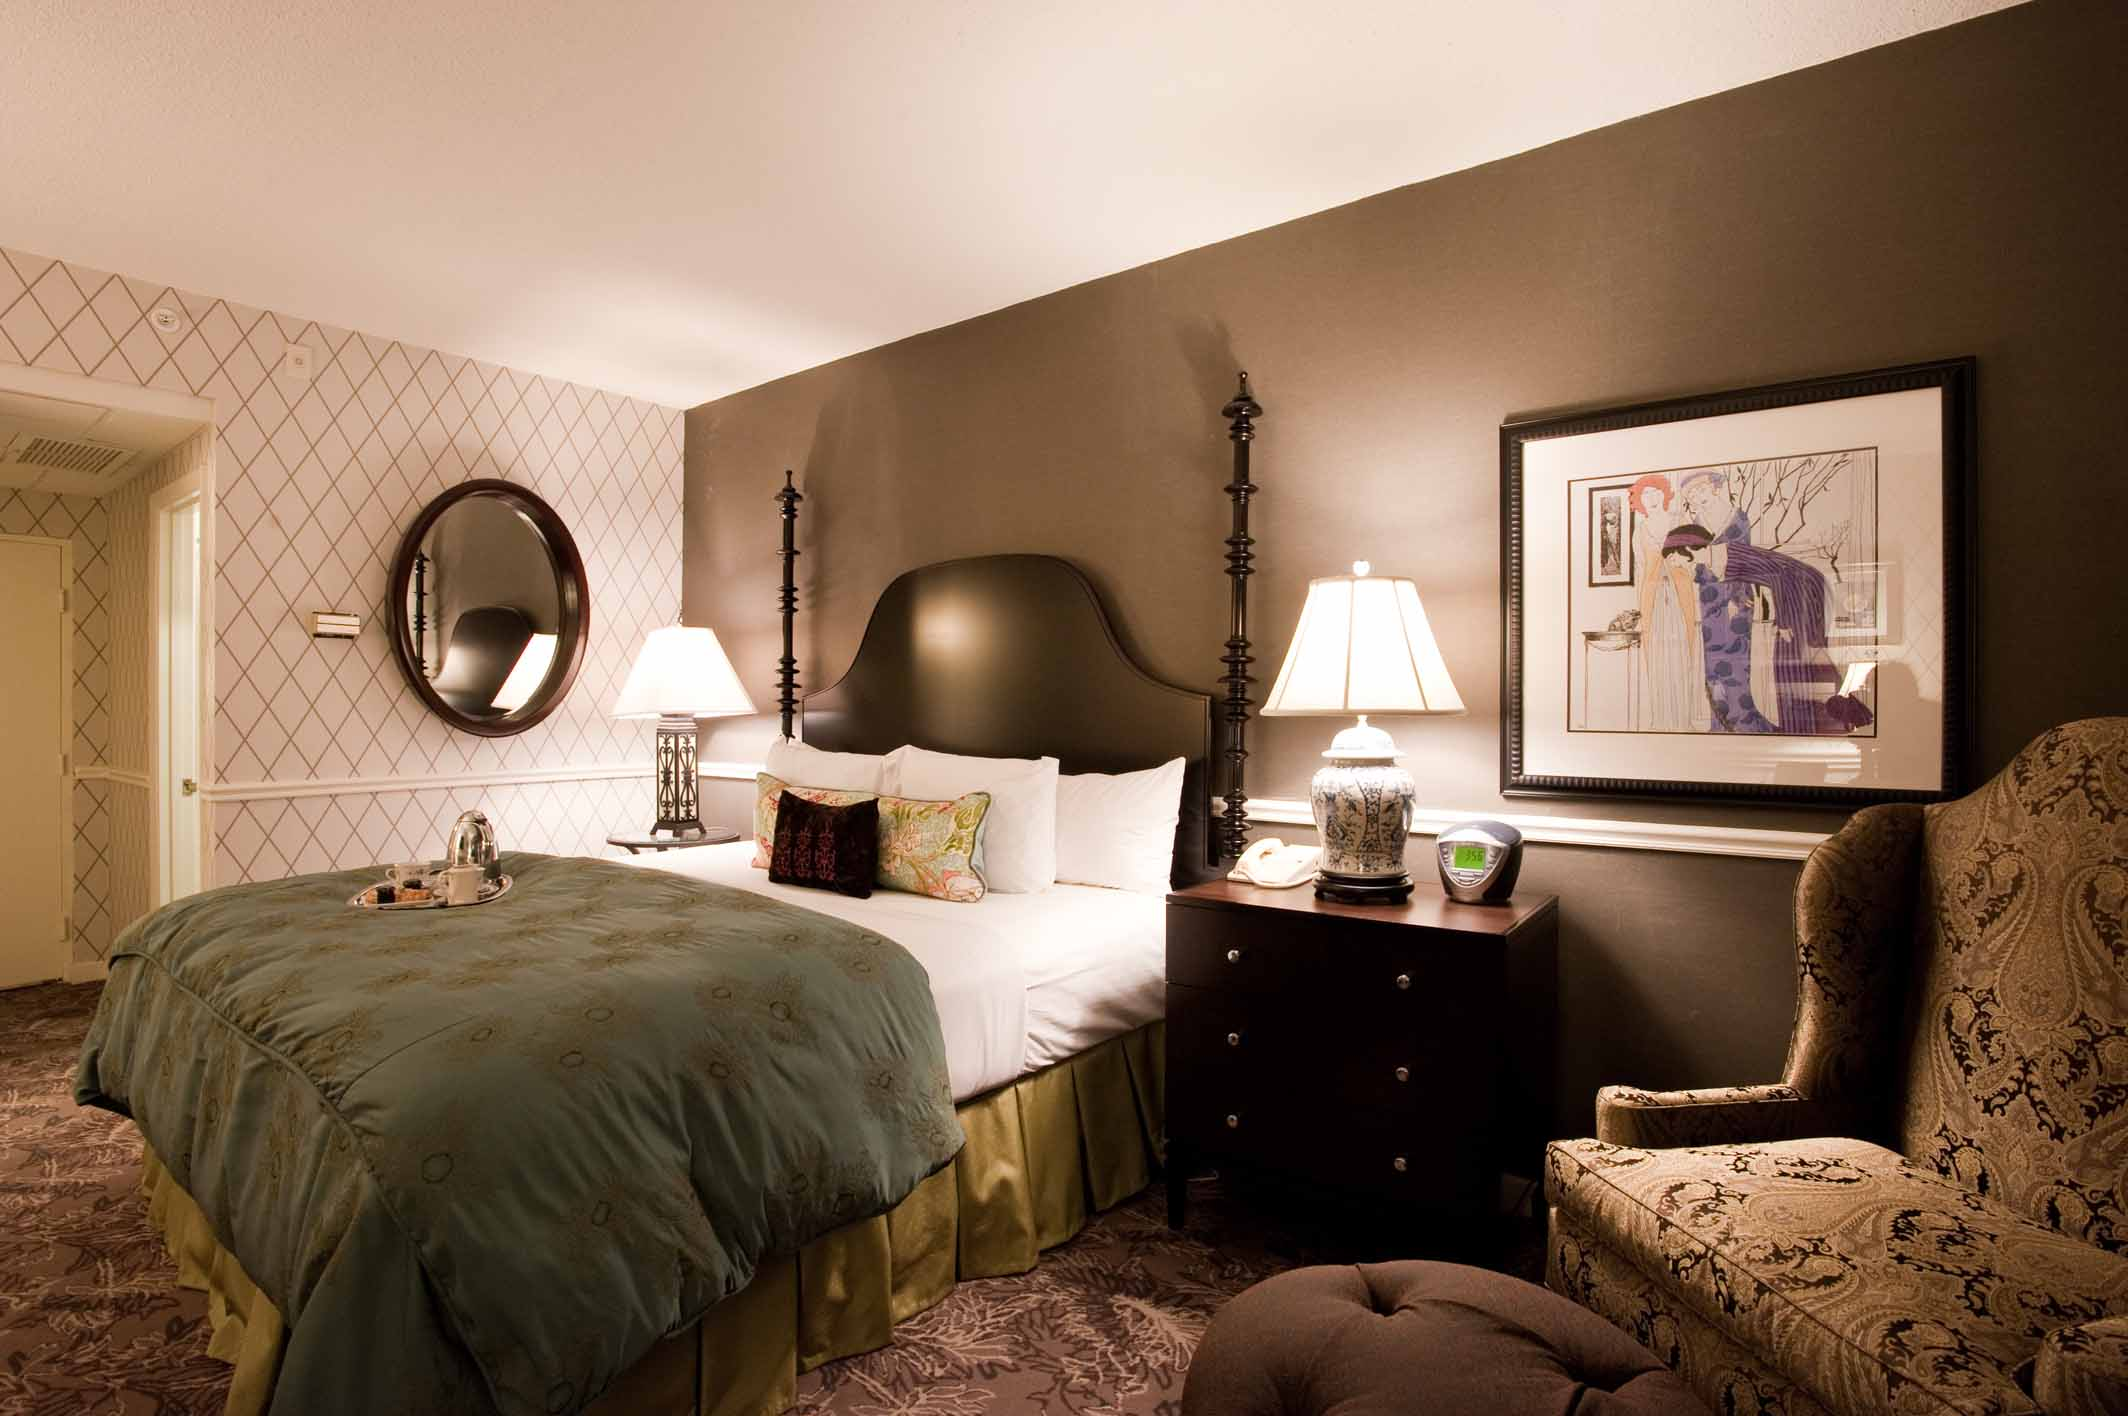 bubbles butlers package at hotel viking offers champagne butler service surrounded by. Black Bedroom Furniture Sets. Home Design Ideas